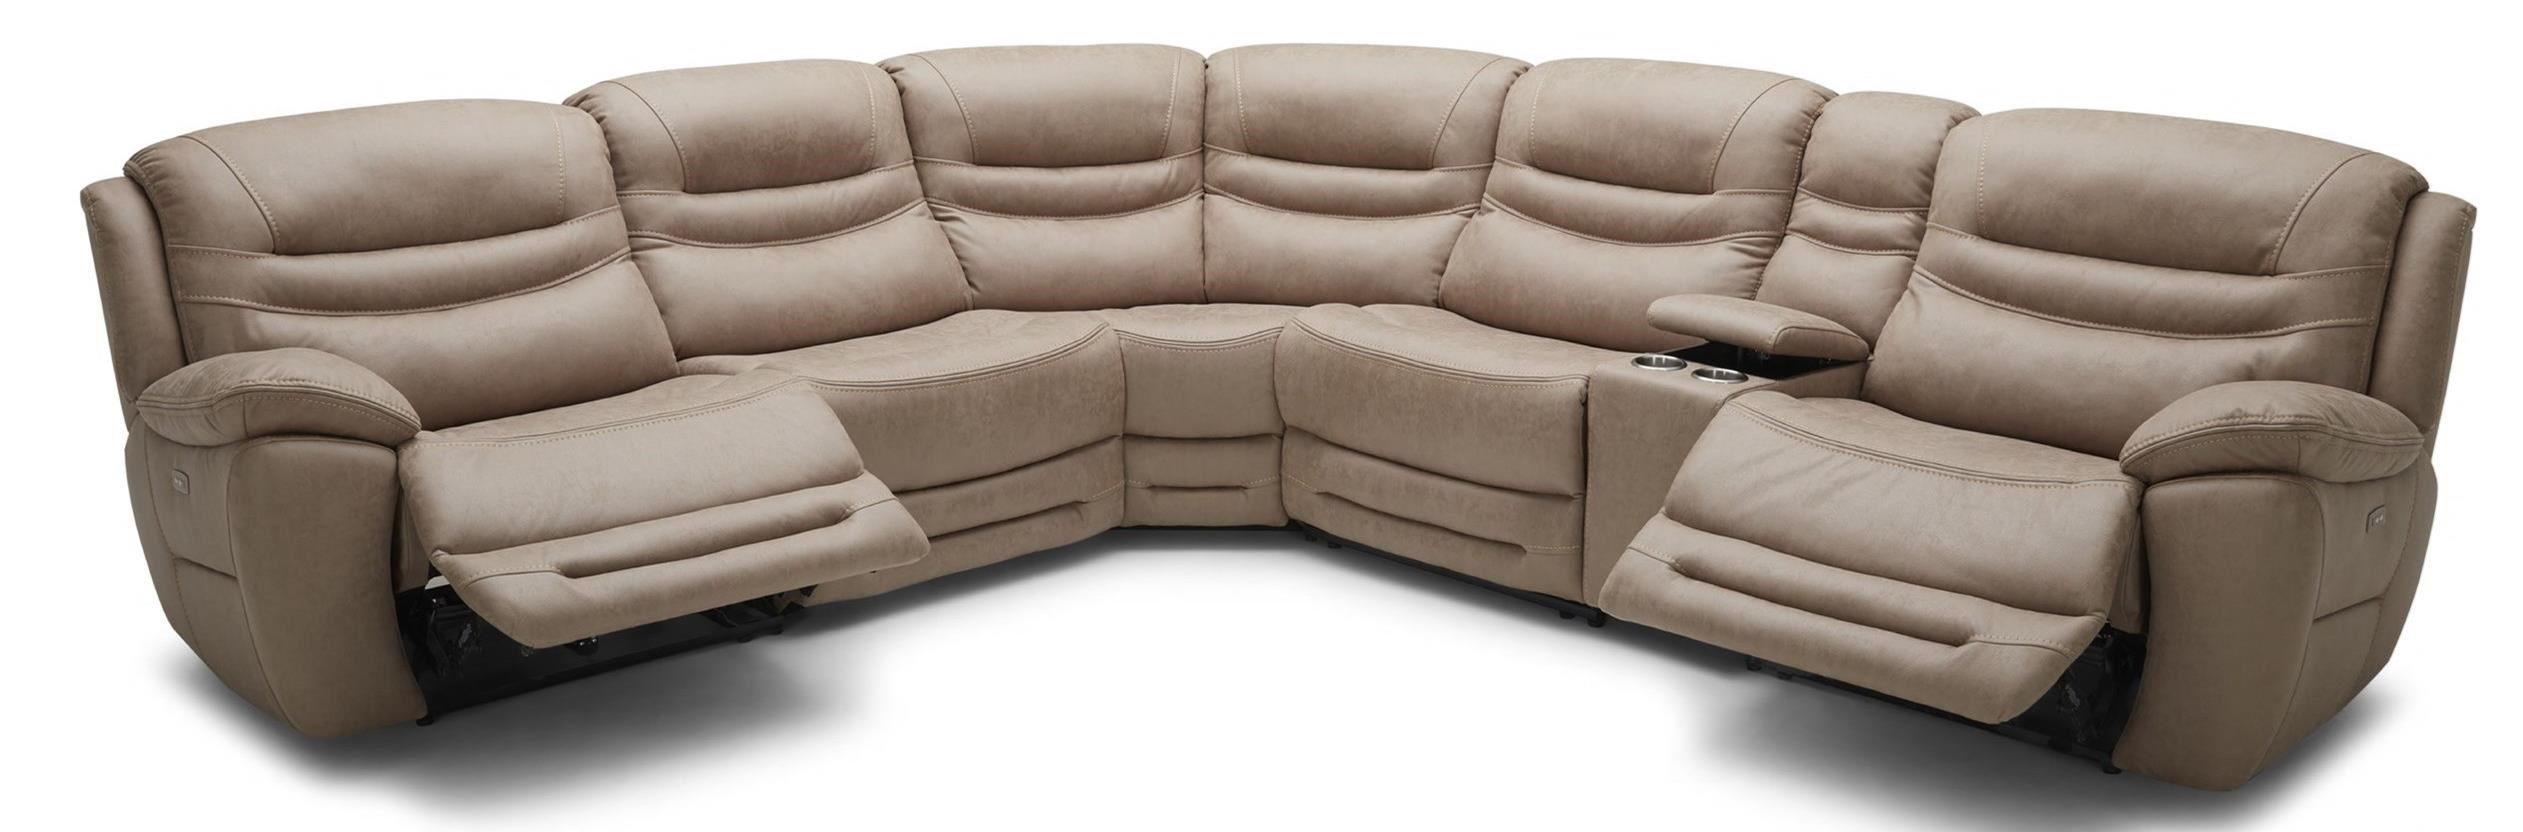 KM083 6 pc Pwr Reclining Sectional Sofa by Kuka Home at Beck's Furniture